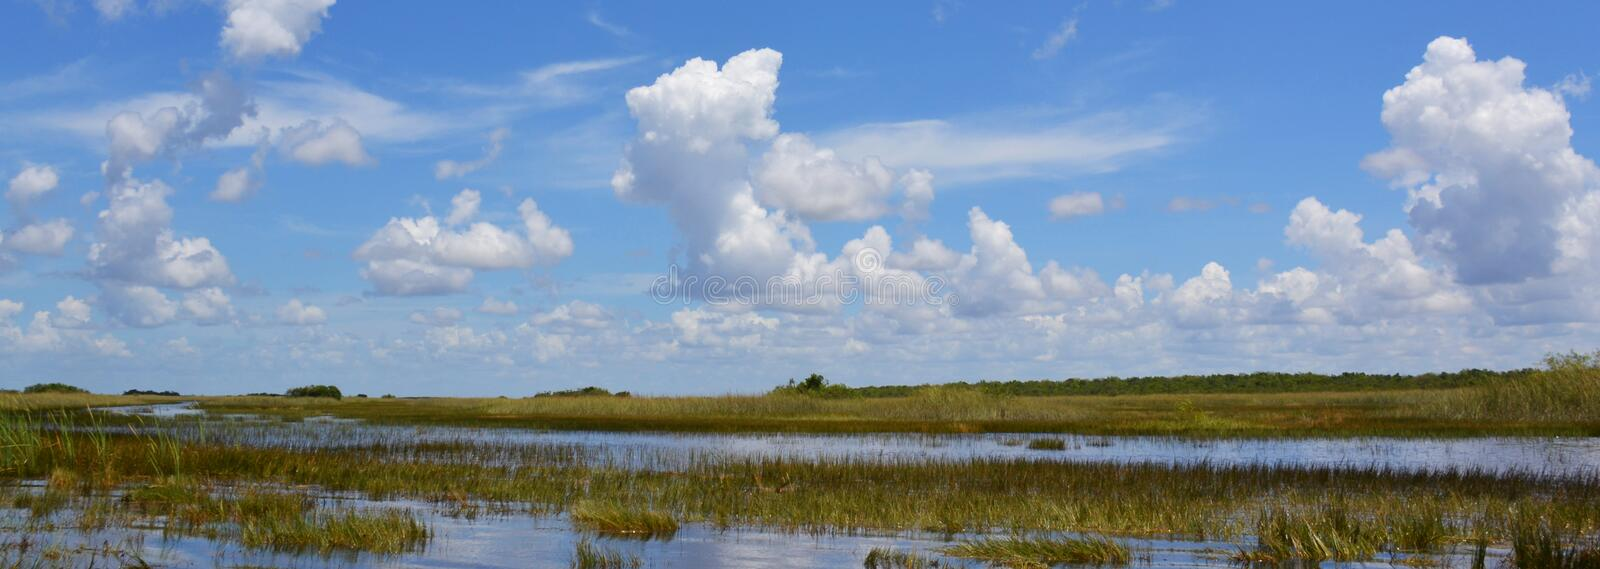 Florida wetland. Everglades National Park in Florida, USA. Florida wetland at summer. Everglades National Park in Florida state, USA stock photos